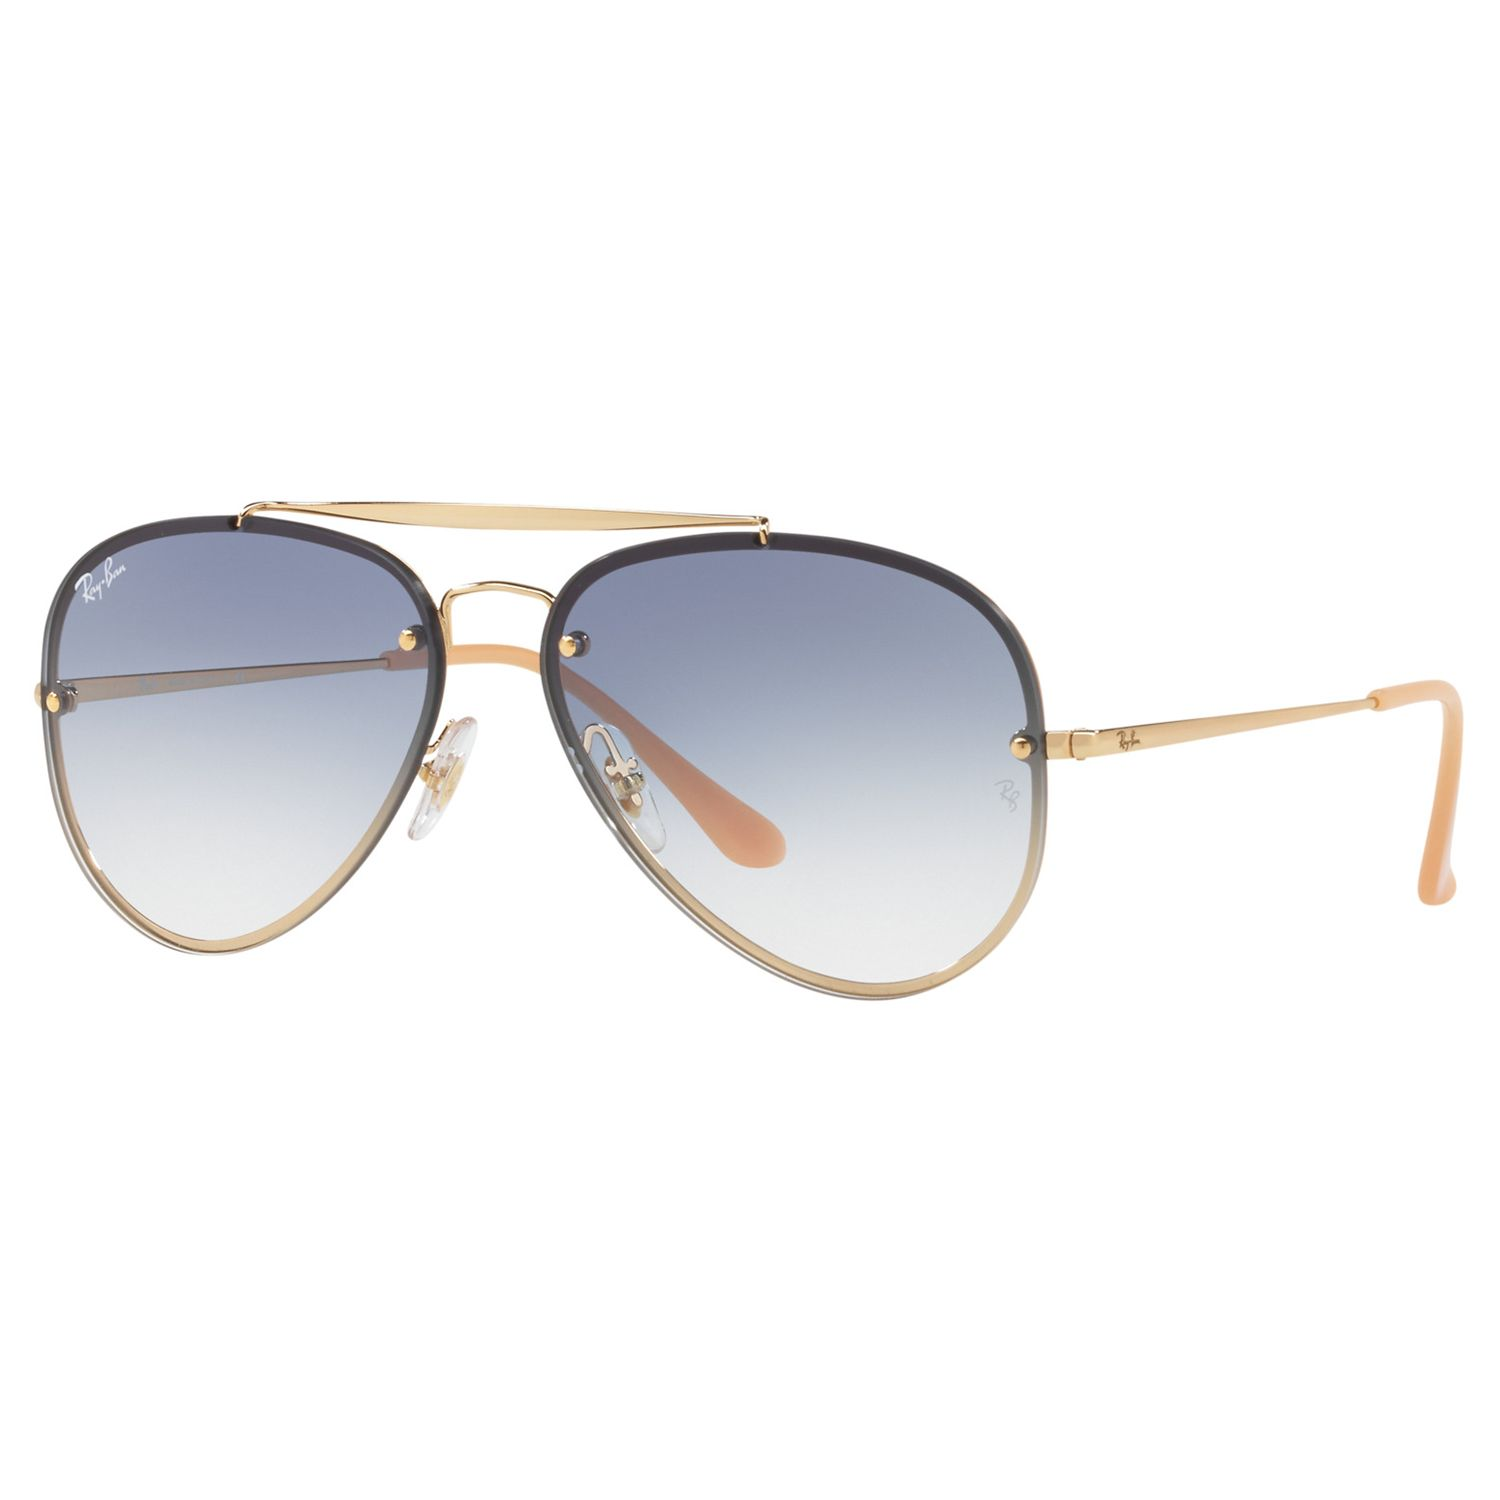 Ray-ban Ray-Ban RB3584N Blaze Aviator Sunglasses, Gold/Blue Gradient